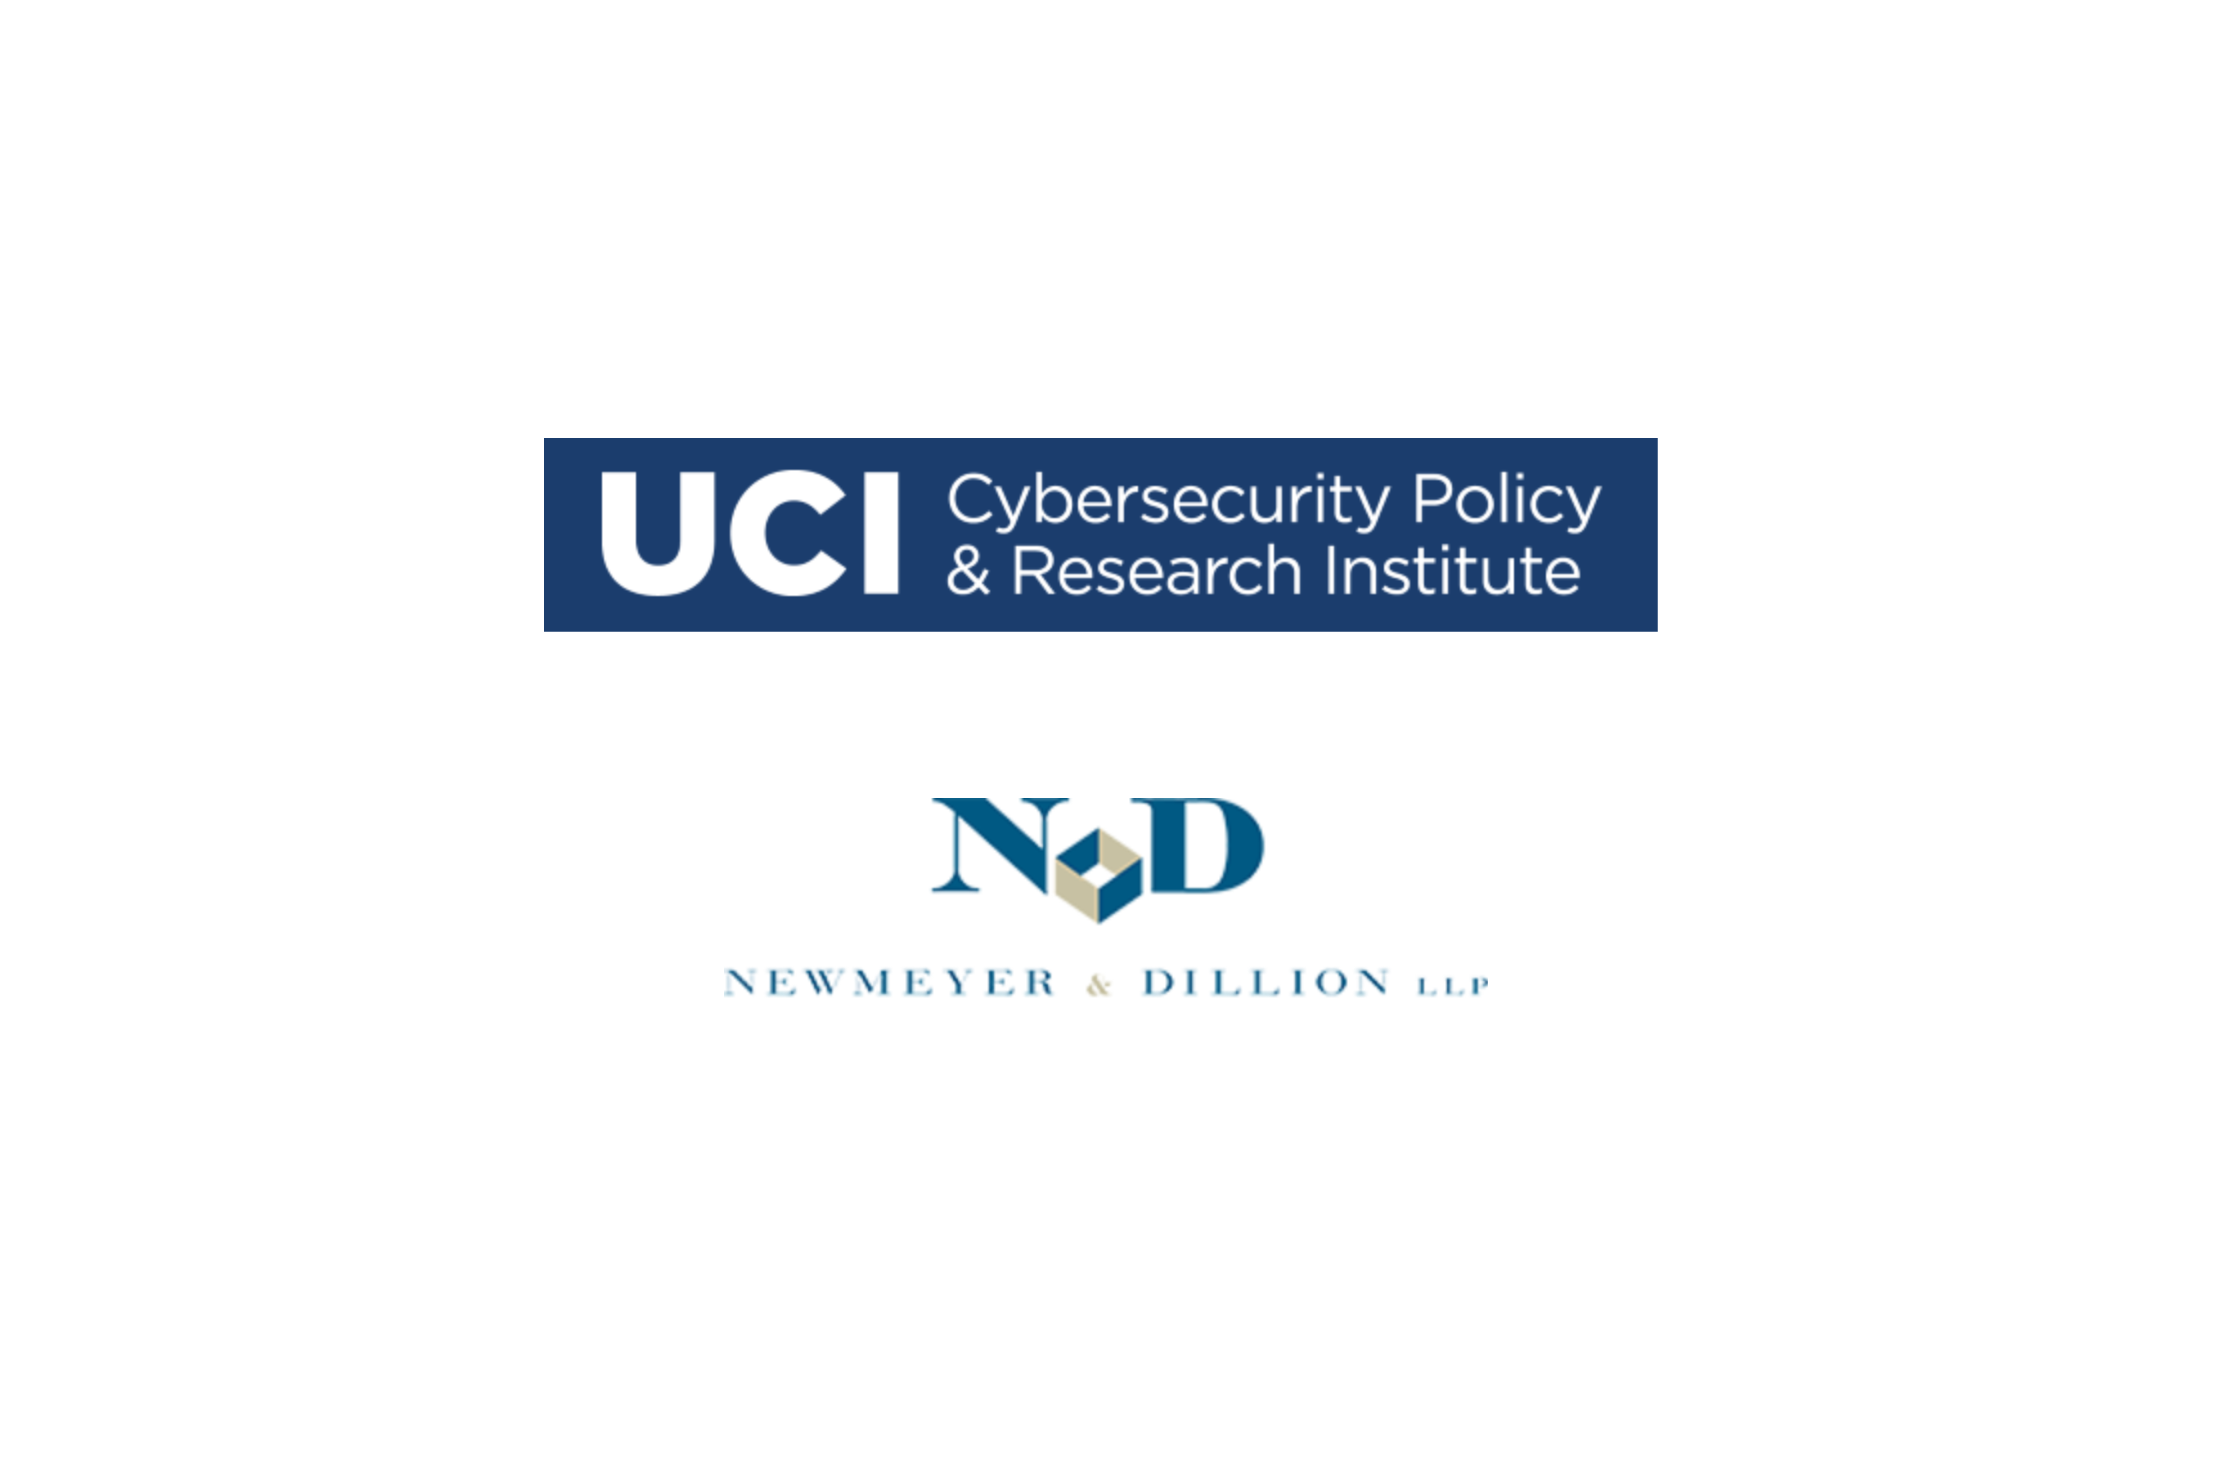 UCI Cybersecurity Policy & Research Institute & Newmeyer & Dillion, LLP Present: Social Media & Cybersecurity